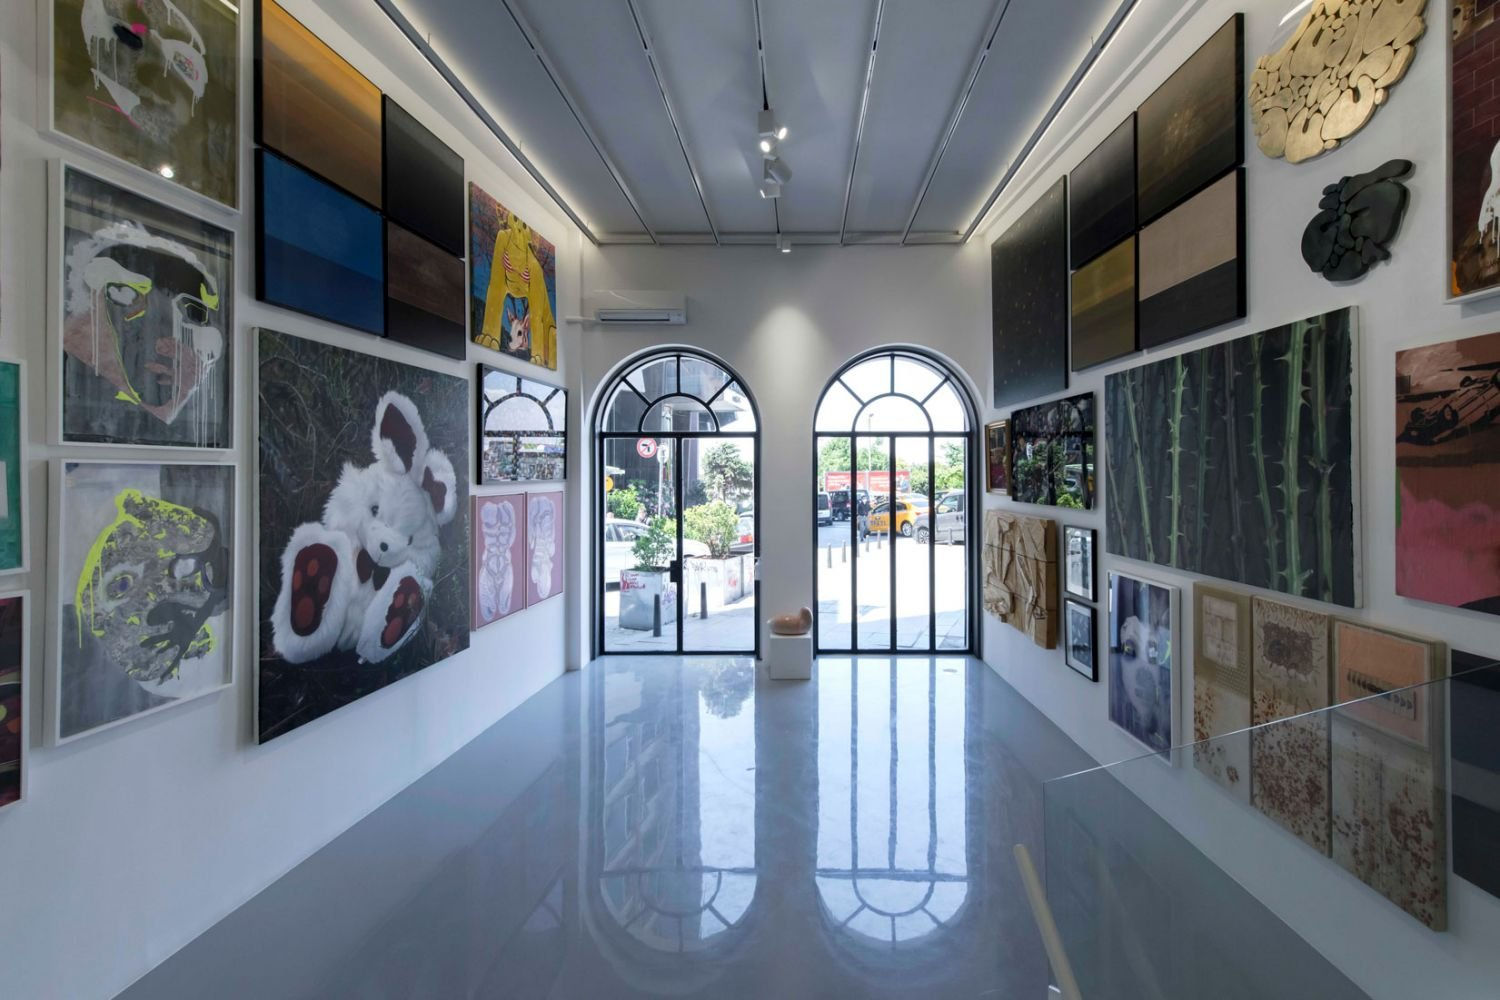 The exhibition emphasizes the summer season which comes as an award after the difficult pandemic period in its title.